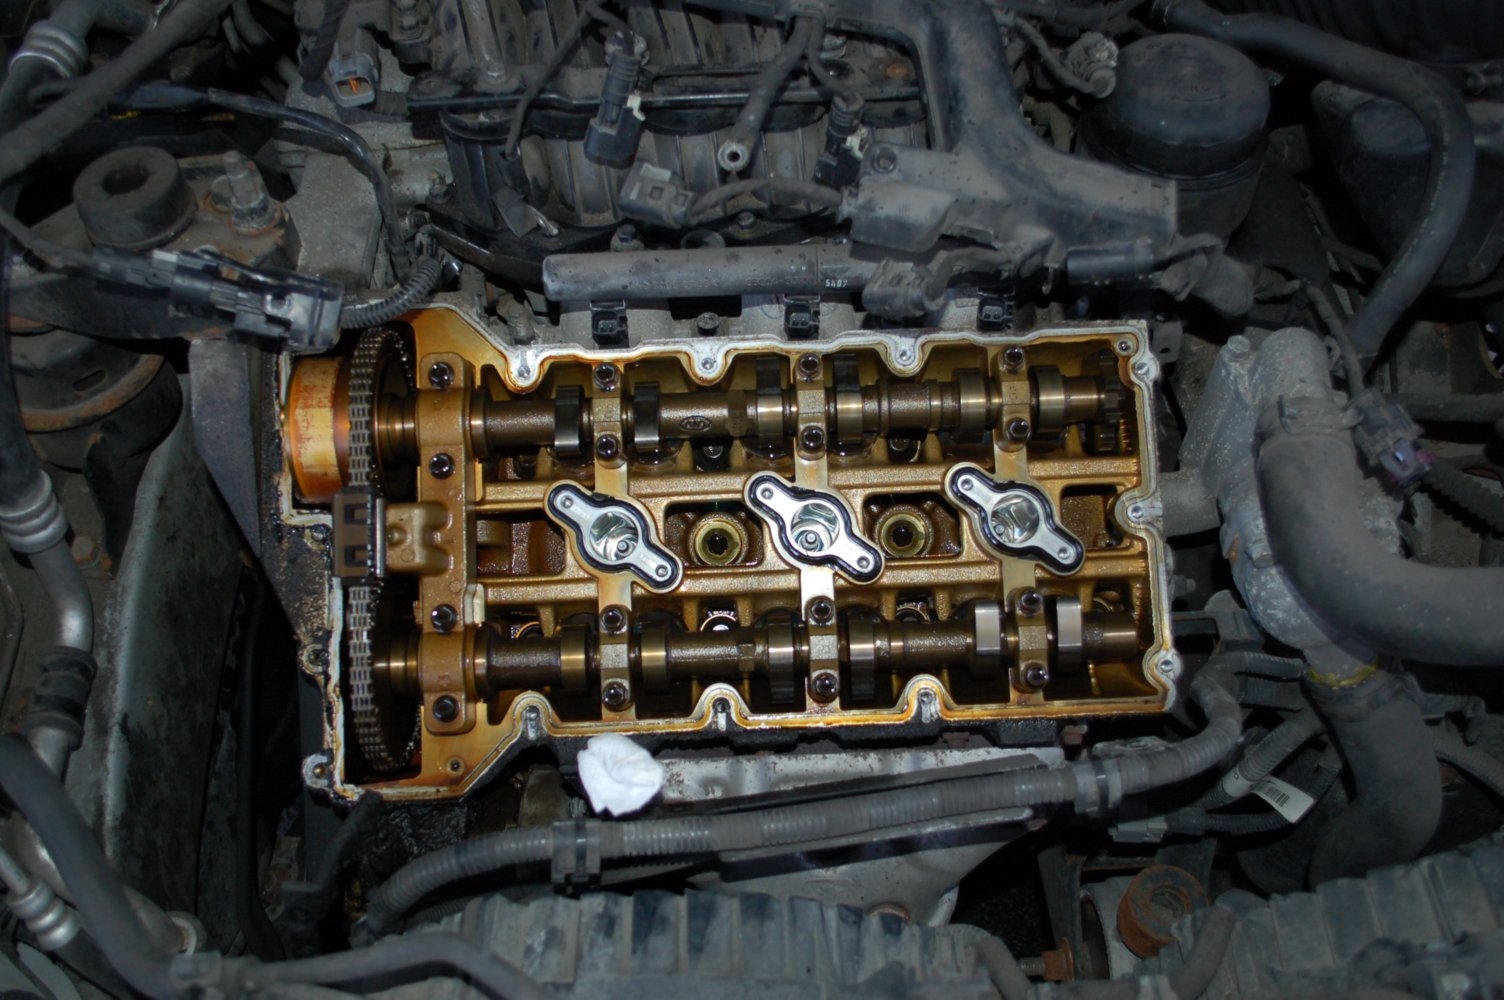 2006 Kia Sedona Engine Diagram Oil Filter System Free Wiring